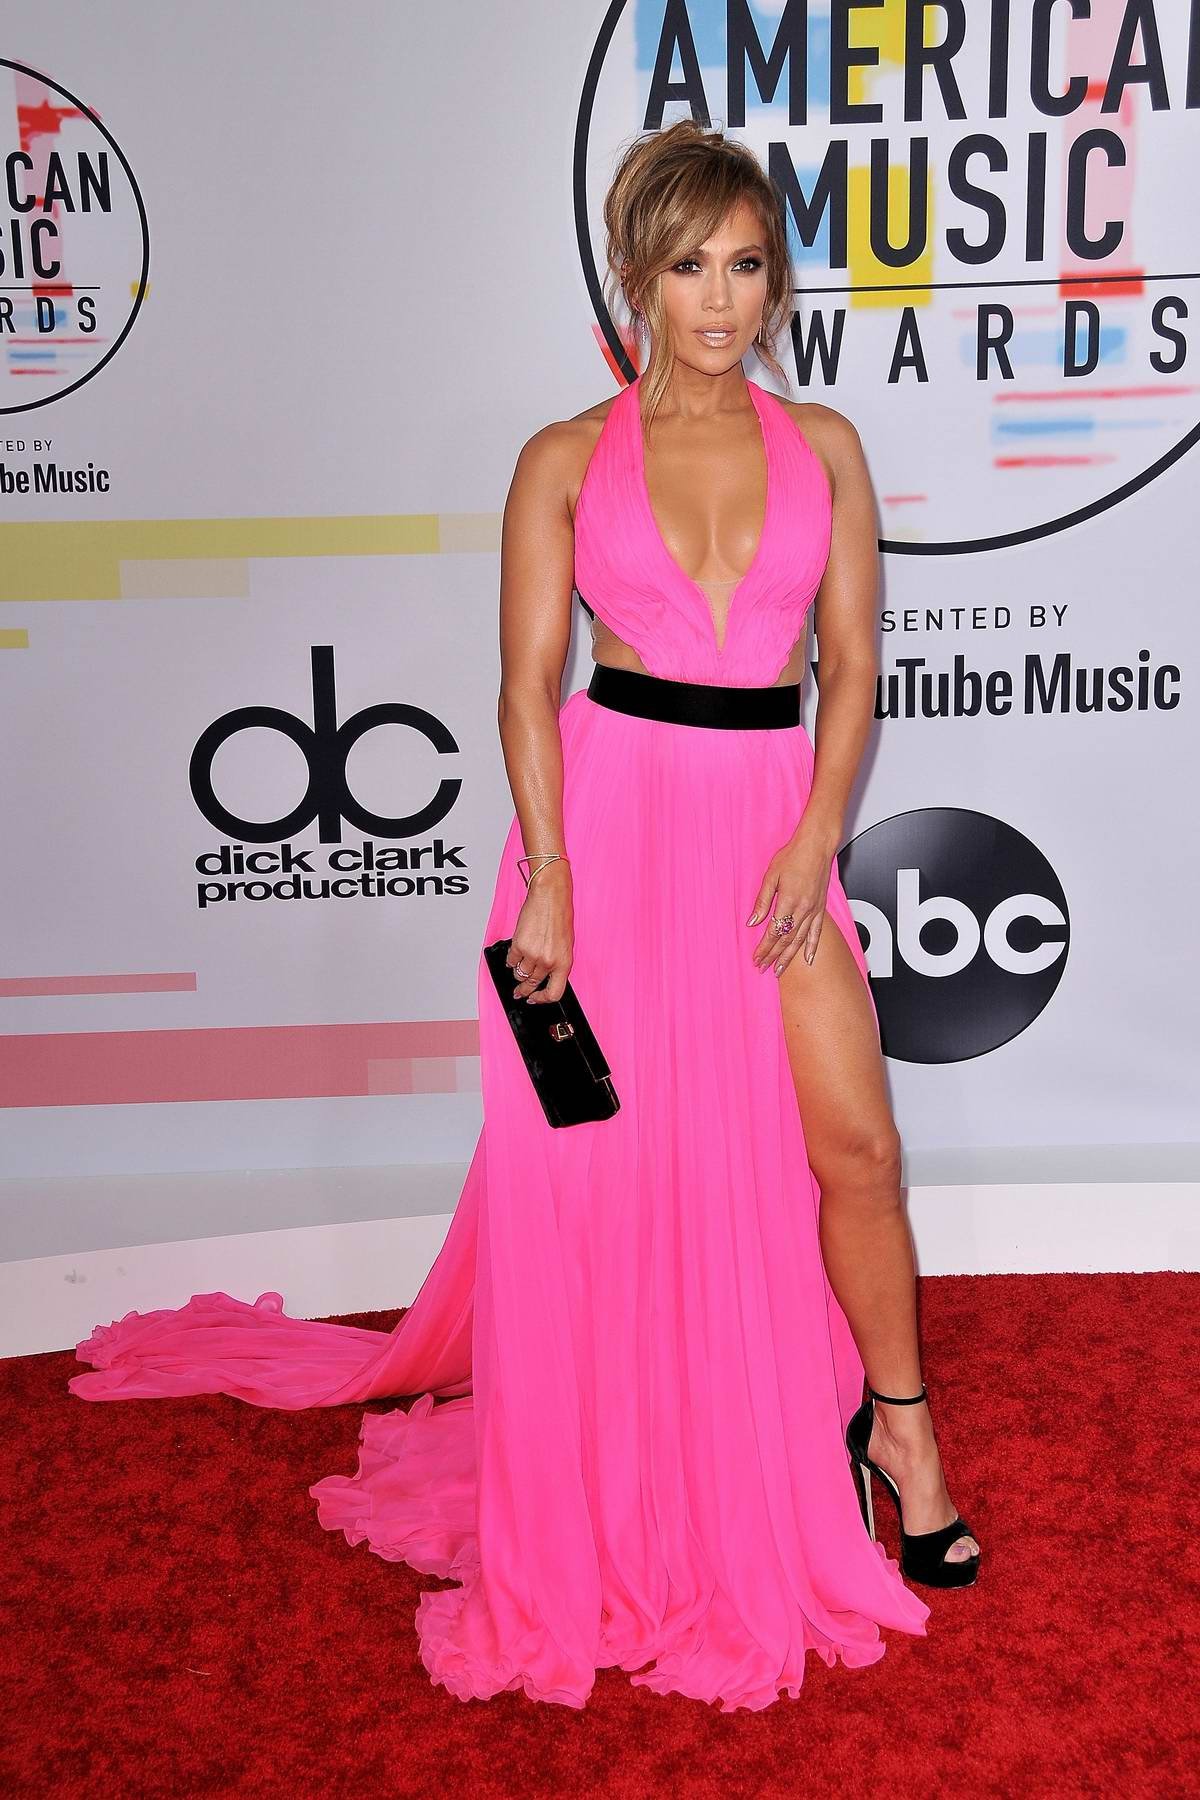 Sol Gym Jennifer Lopez Attends 2018 American Music Awards (ama